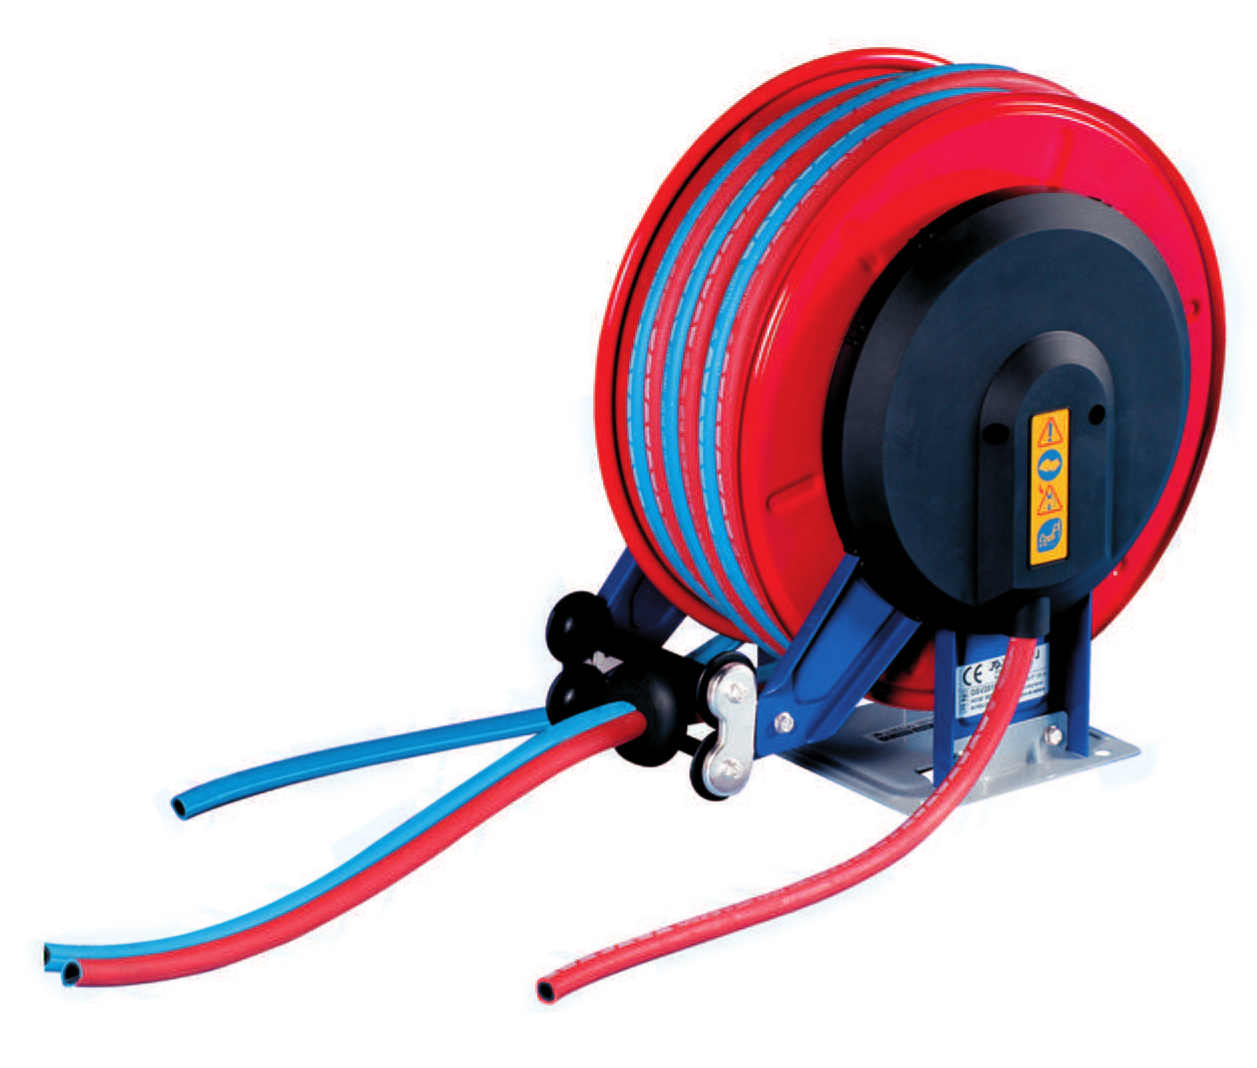 GAS WELDING HOSE REELS page image